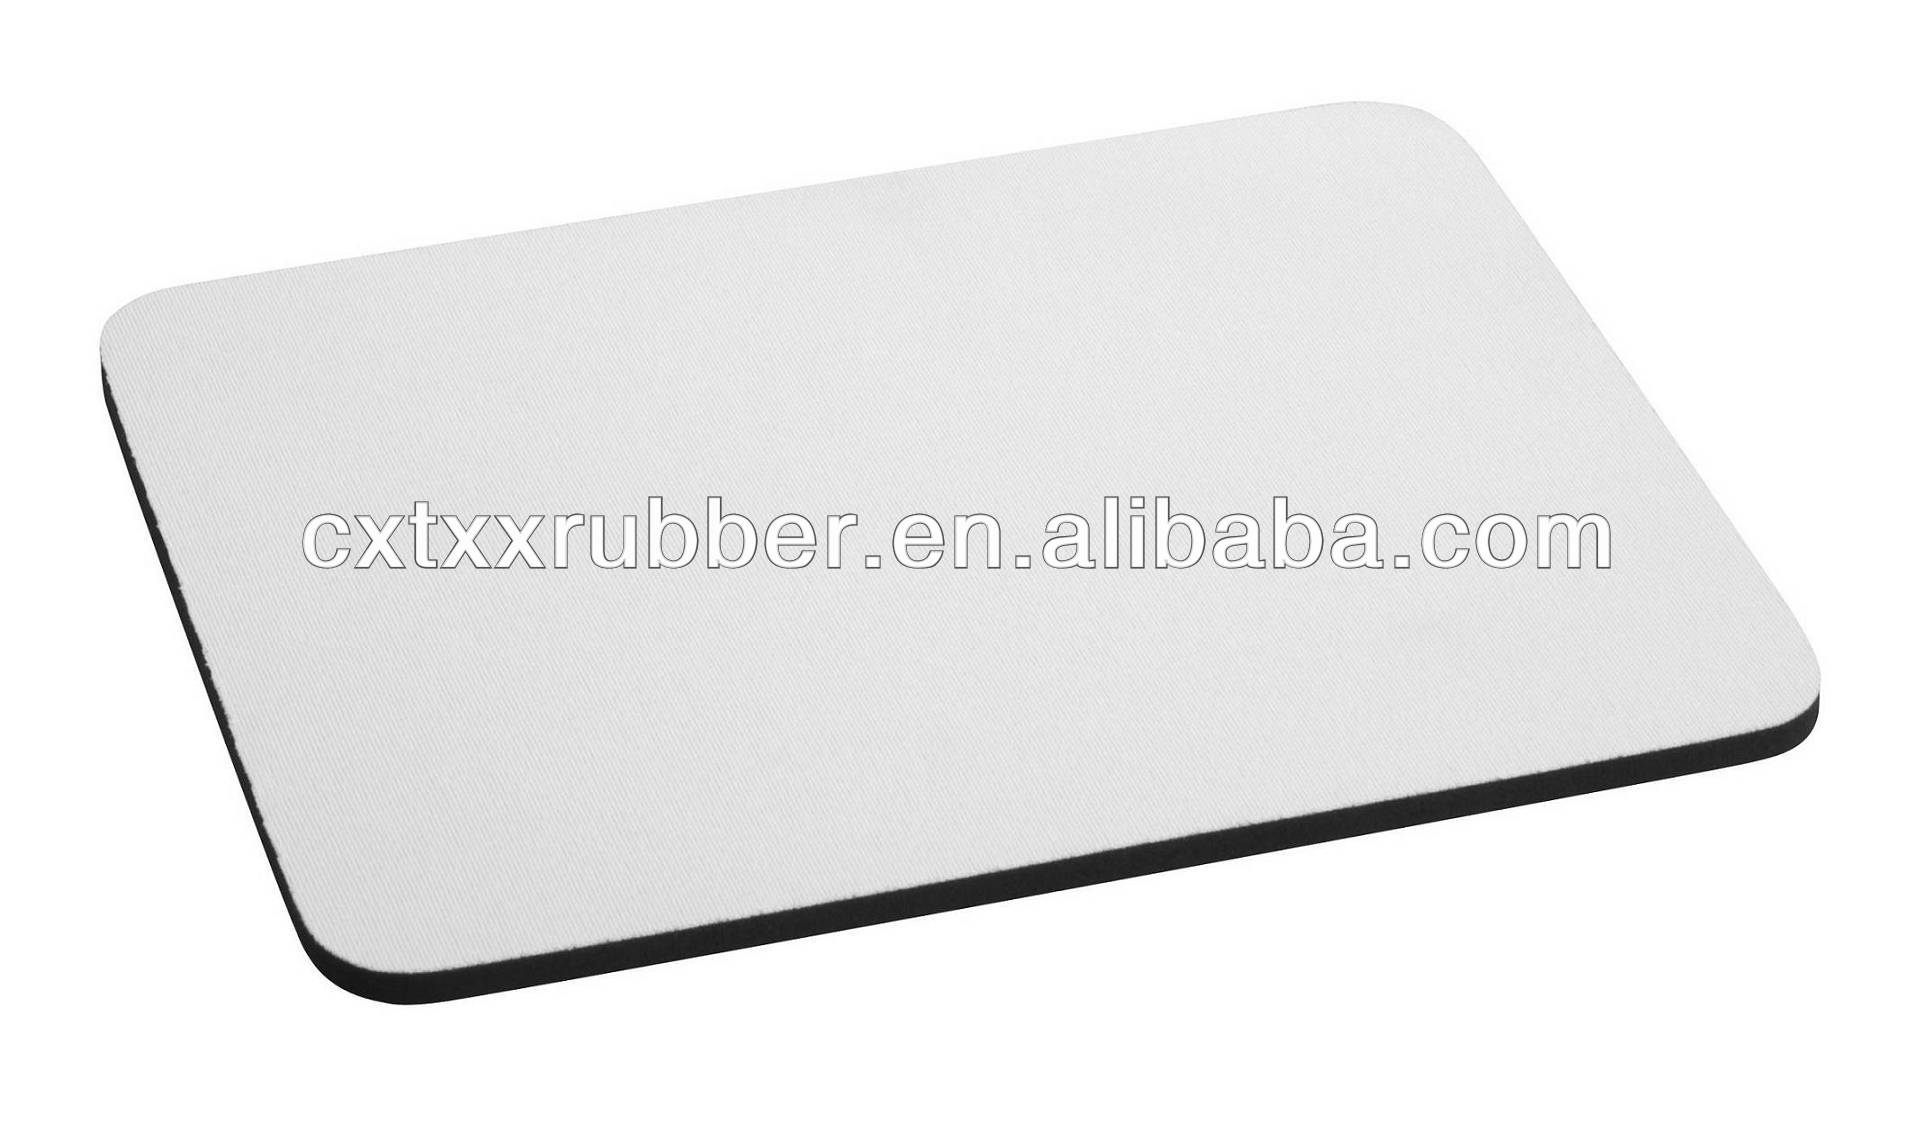 white polyester fabric mouse pad,white color mousepad